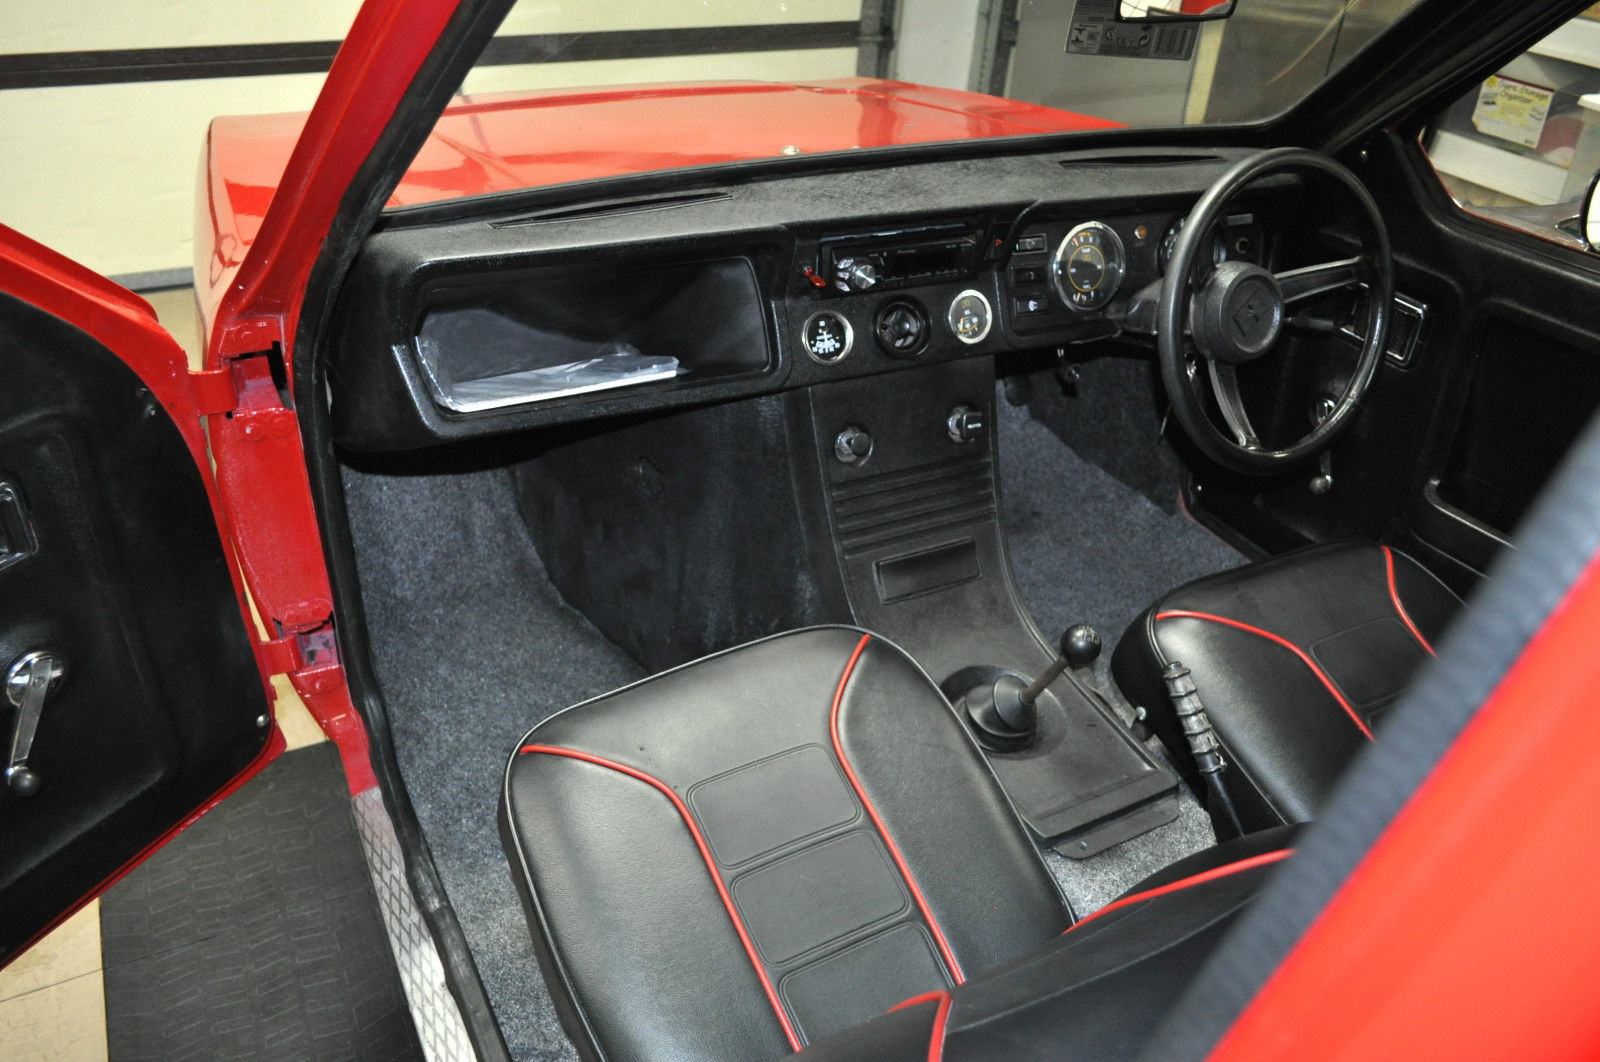 Car interior piping - Contrasting Piping Is Nice And The Interior Looks Great Overall For A Reliant